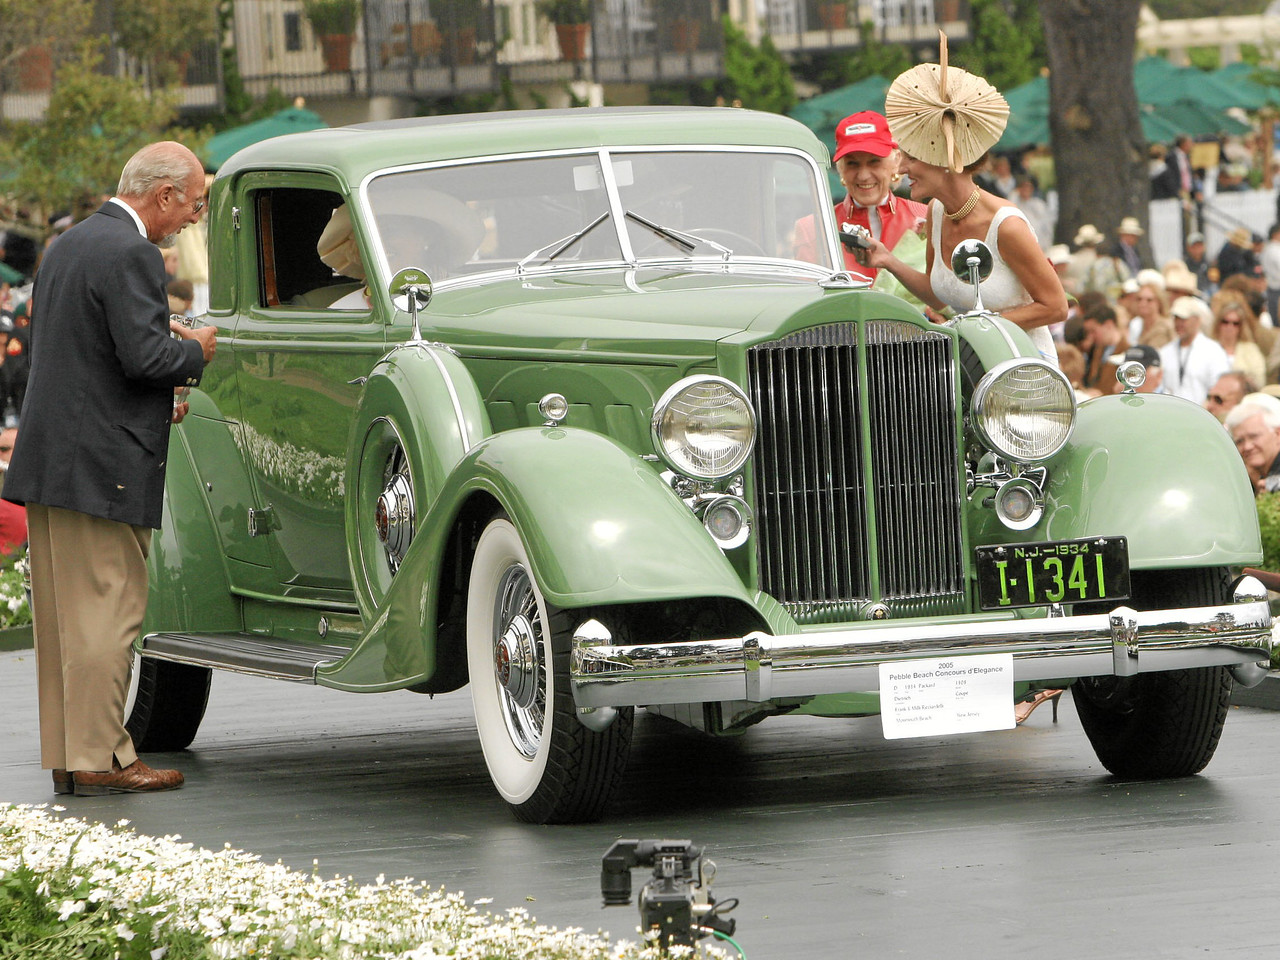 1934 Packard 1108 Dietrich Coupé owned by Frank and Milli Ricciardelli from Monmouth Beach, New Jersey 1st Class D (American Classic Closed 1925-1941)